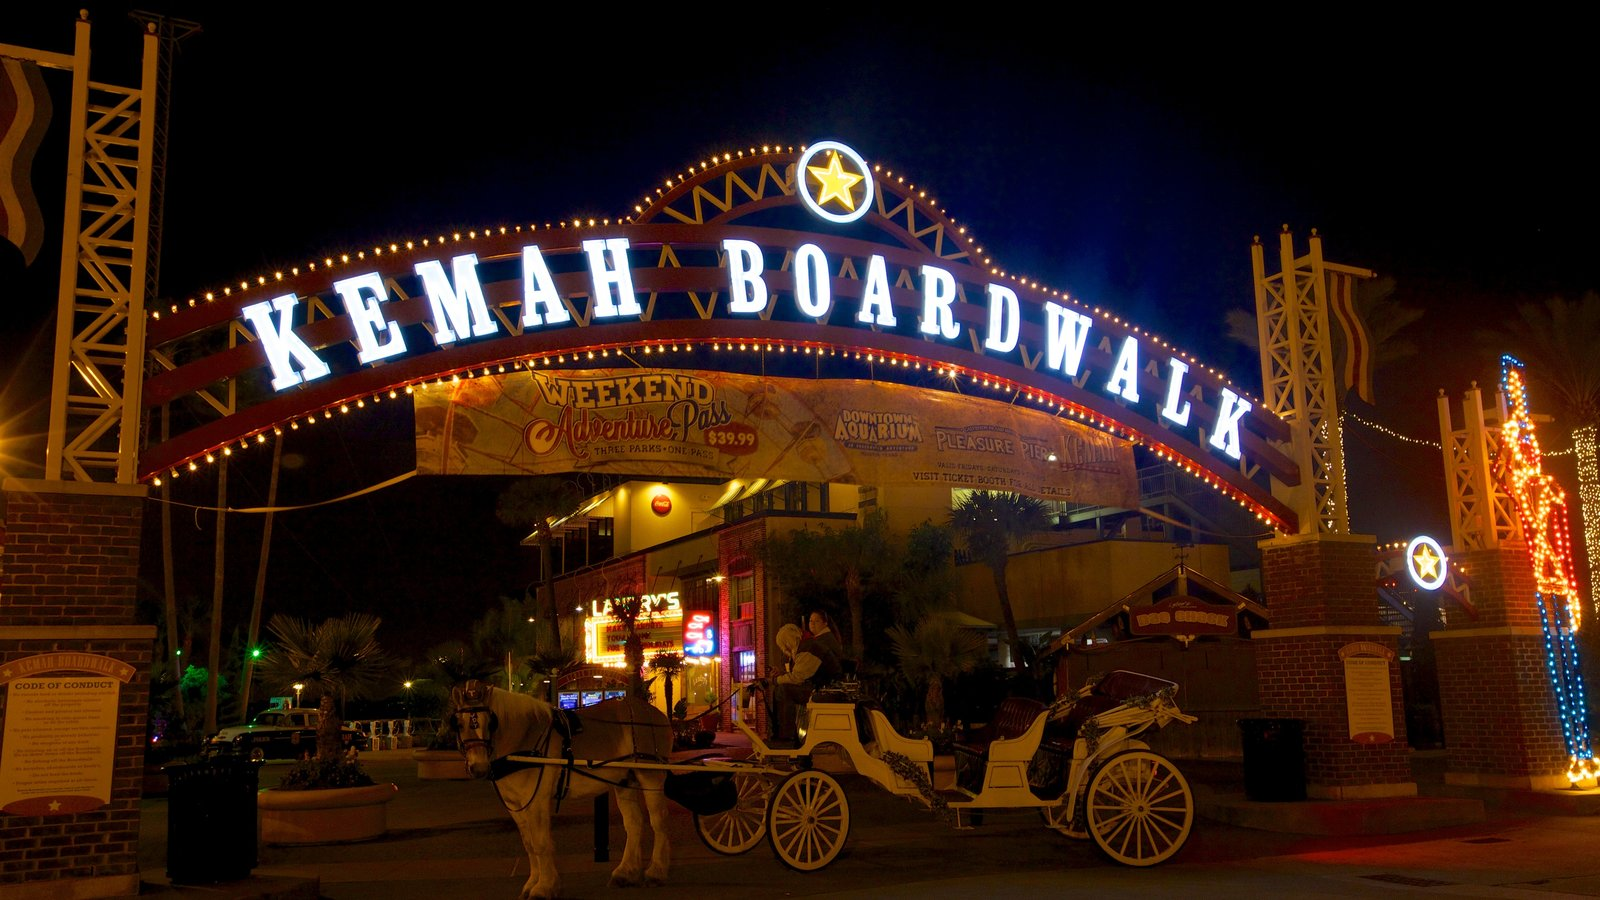 Attraction Pictures View Images of Kemah Boardwalk